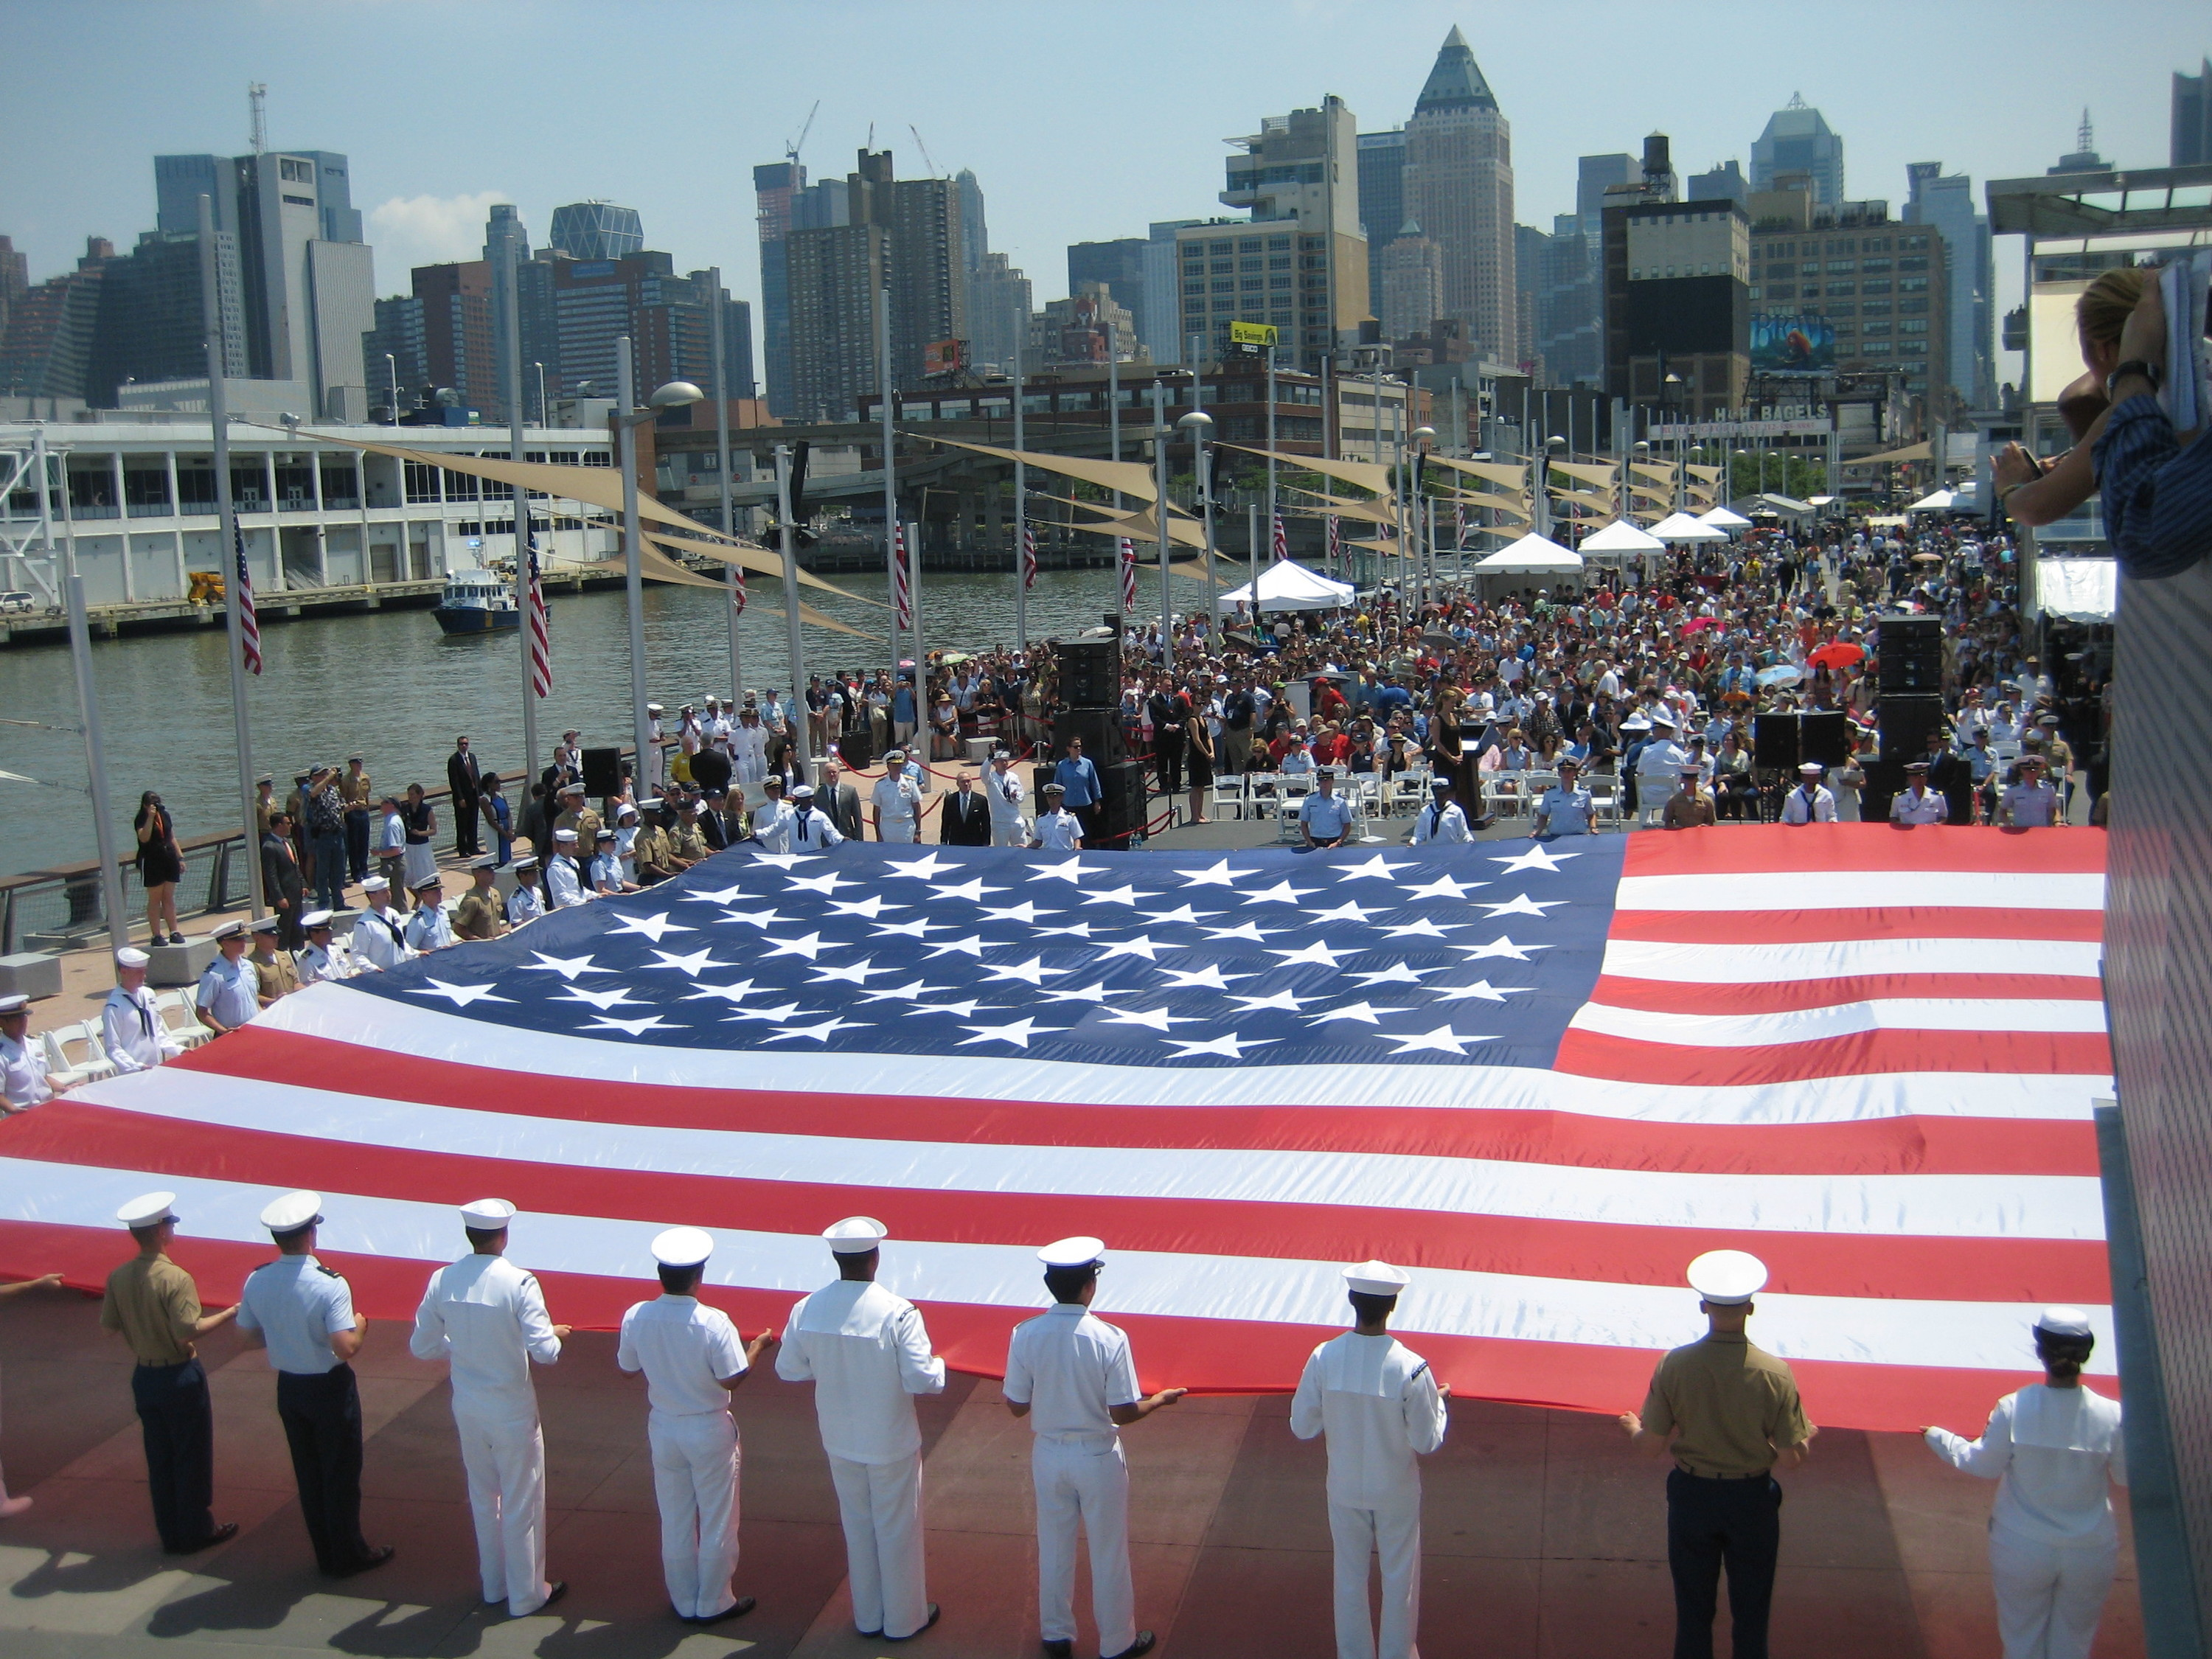 Fleet Week at the Intrepid